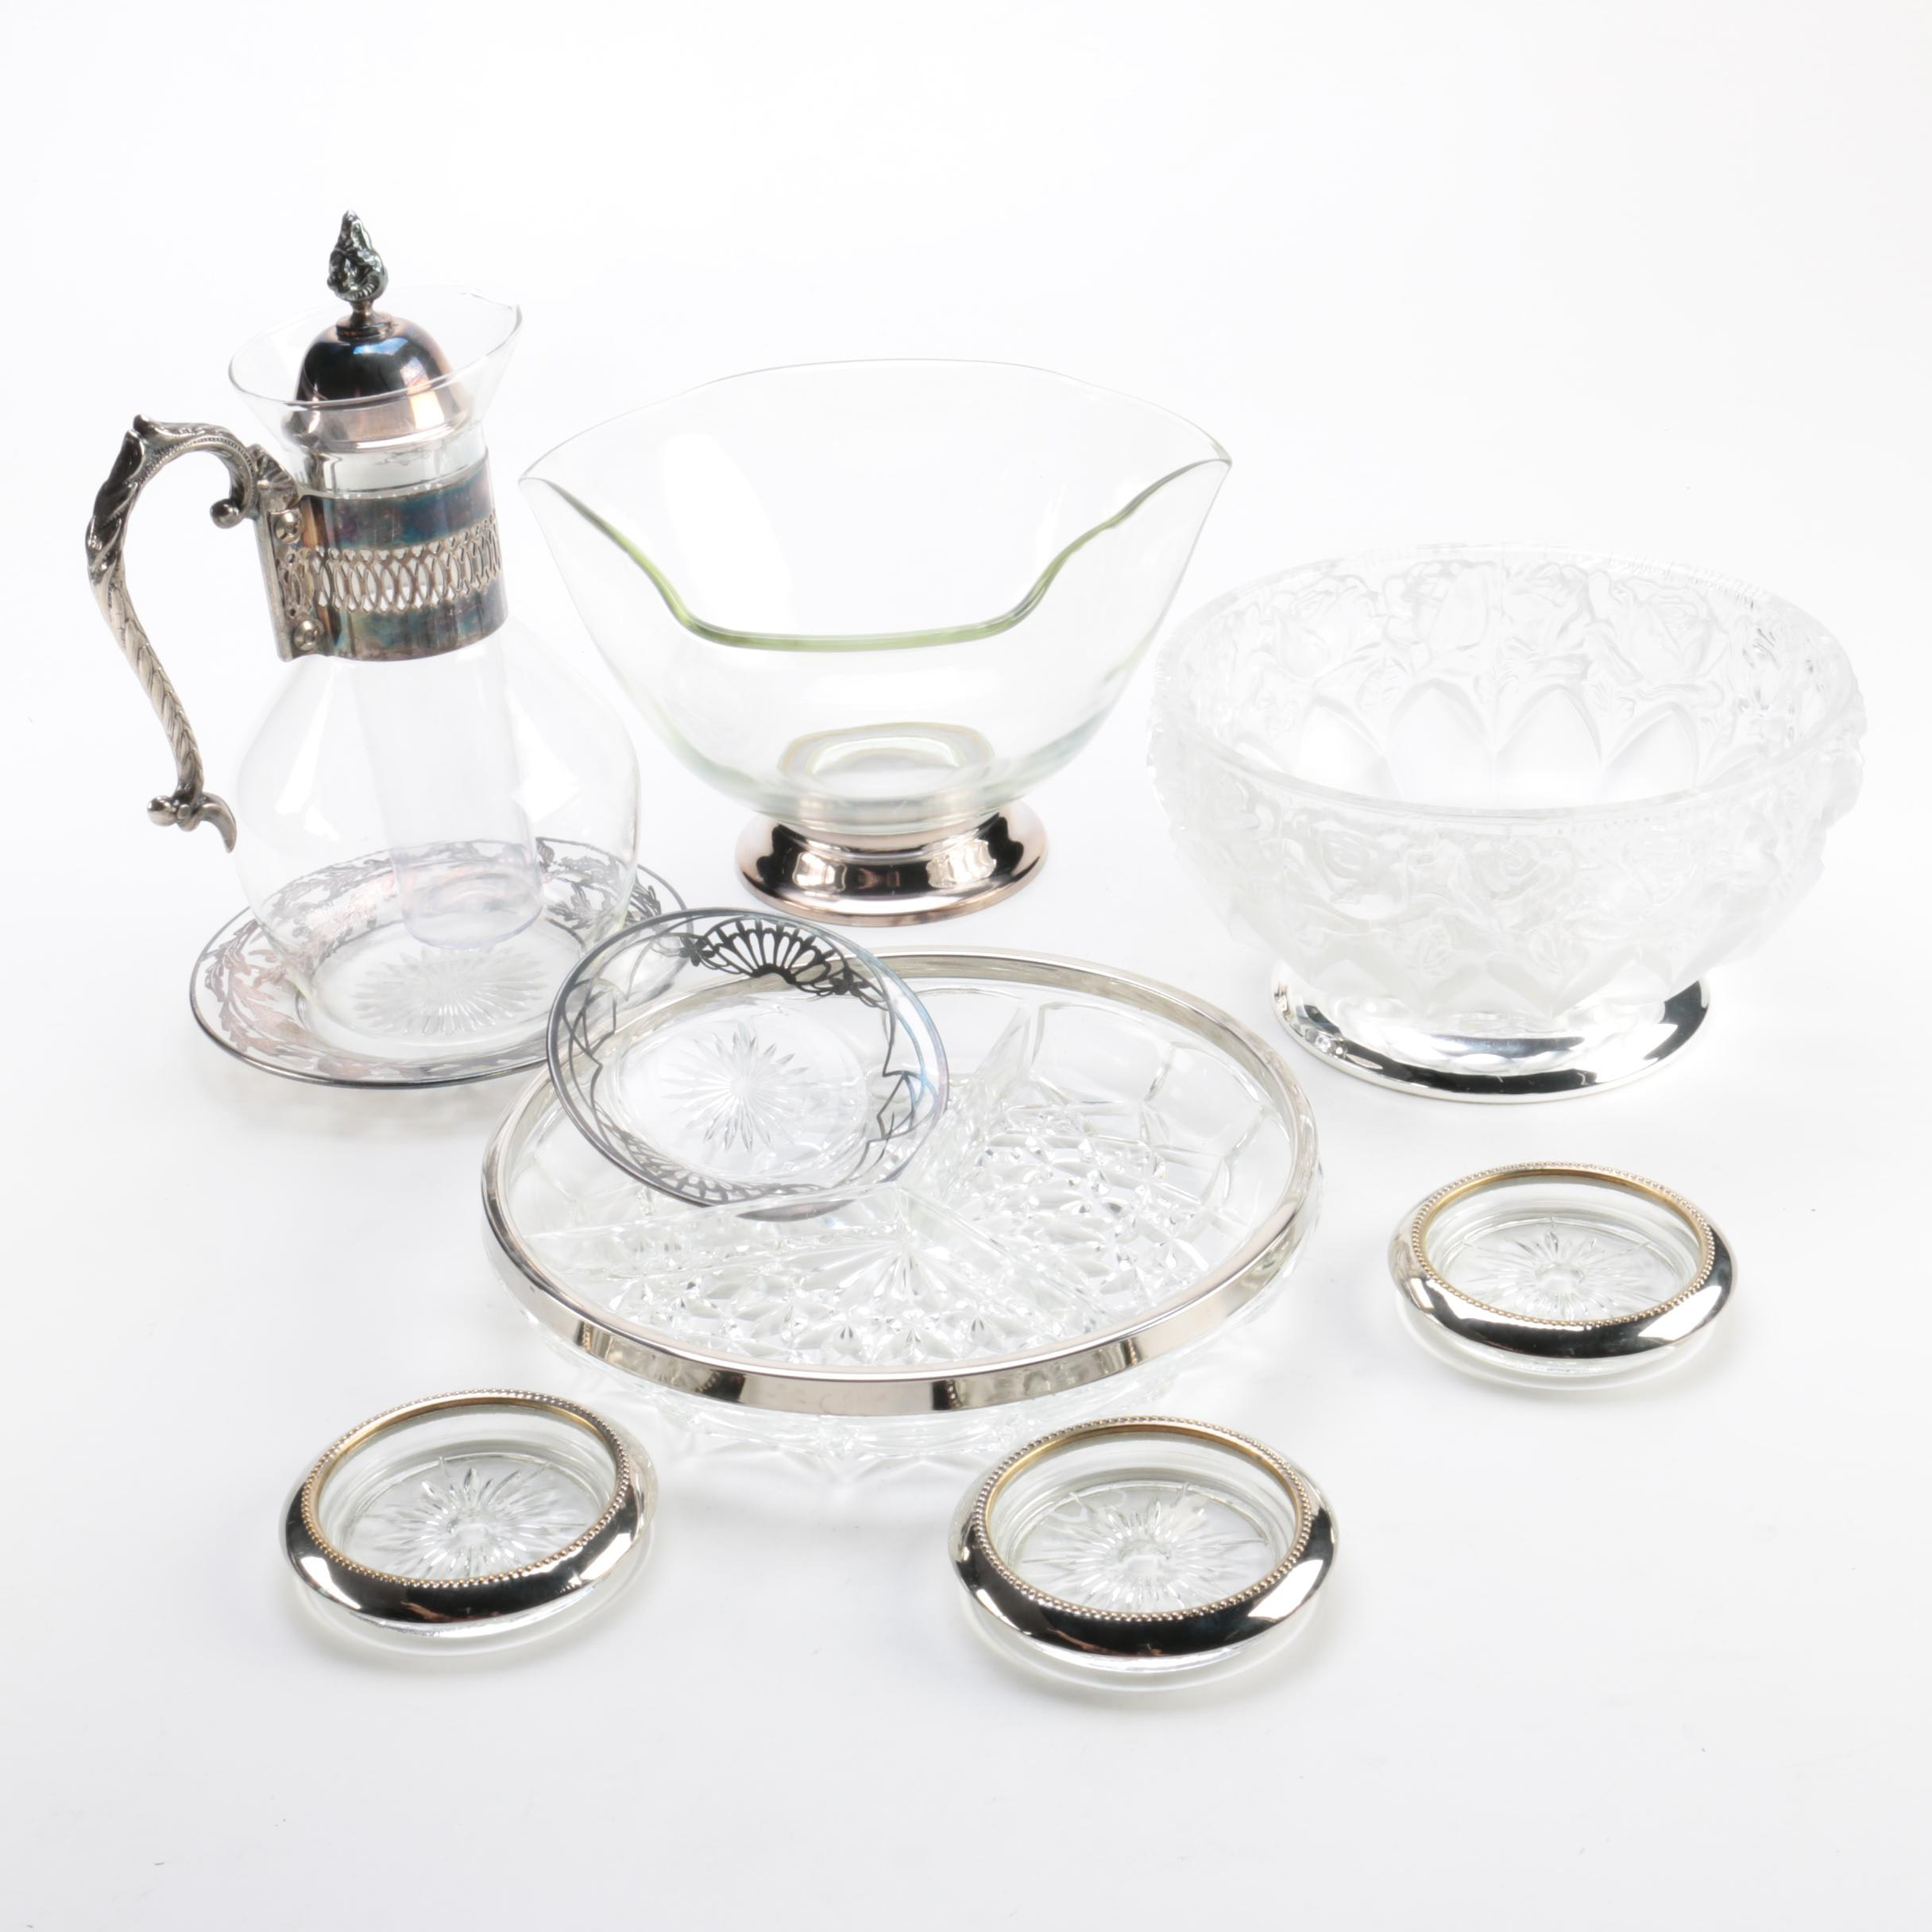 Silver Plate Foliate Overlay Dish and Silver Plate Trimmed Serveware